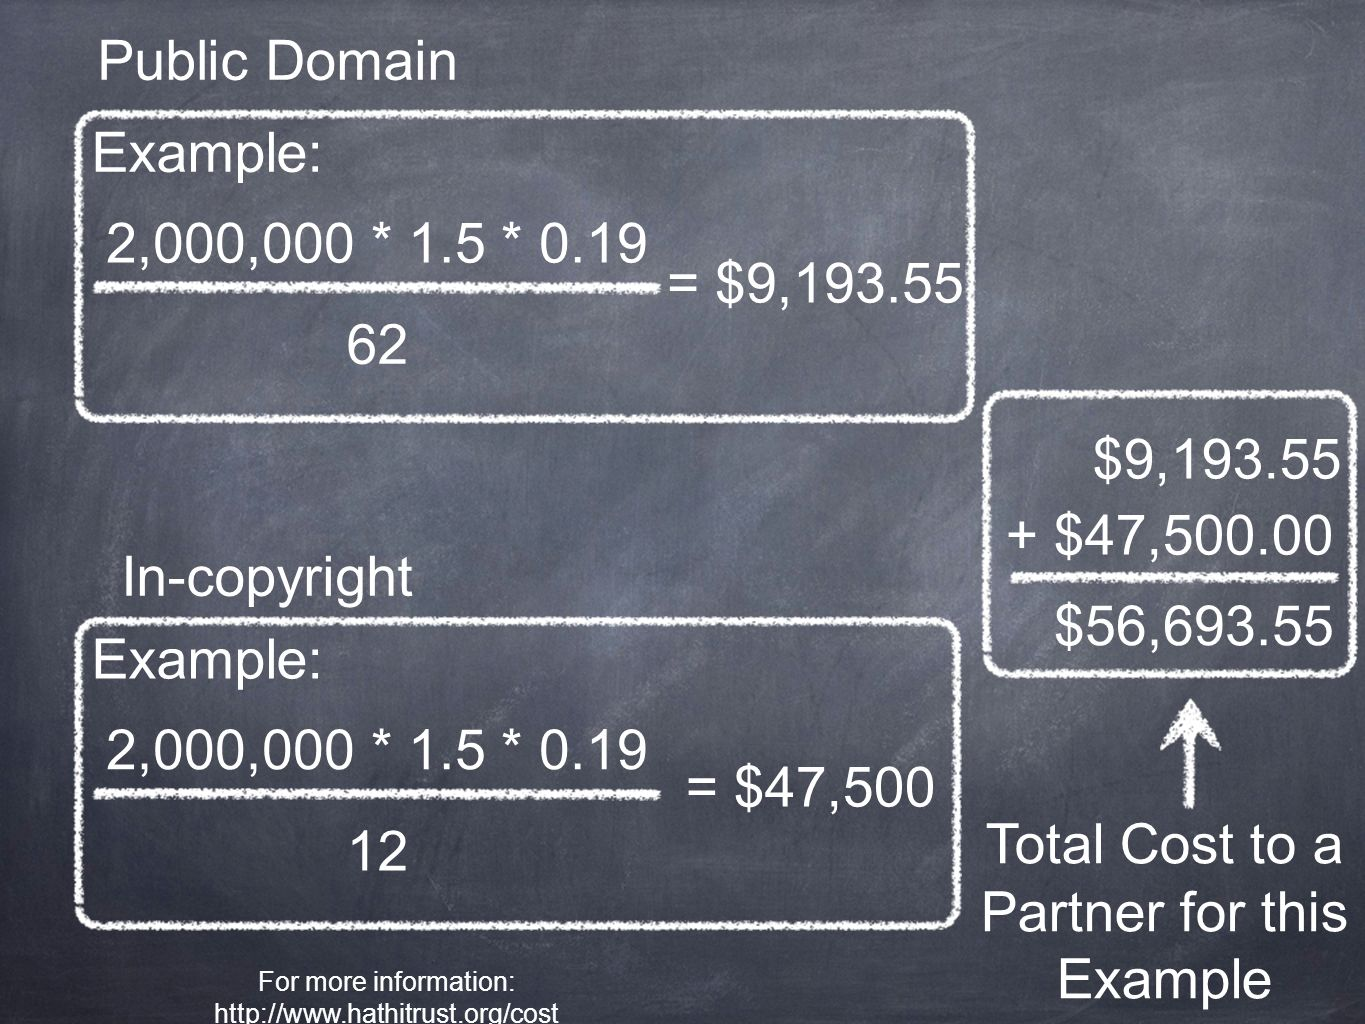 Example: 2,000,000 * 1.5 * 0.19 62 = $9,193.55 2,000,000 * 1.5 * 0.19 12 = $47,500 Example: In-copyright Public Domain $9,193.55 + $47,500.00 $56,693.